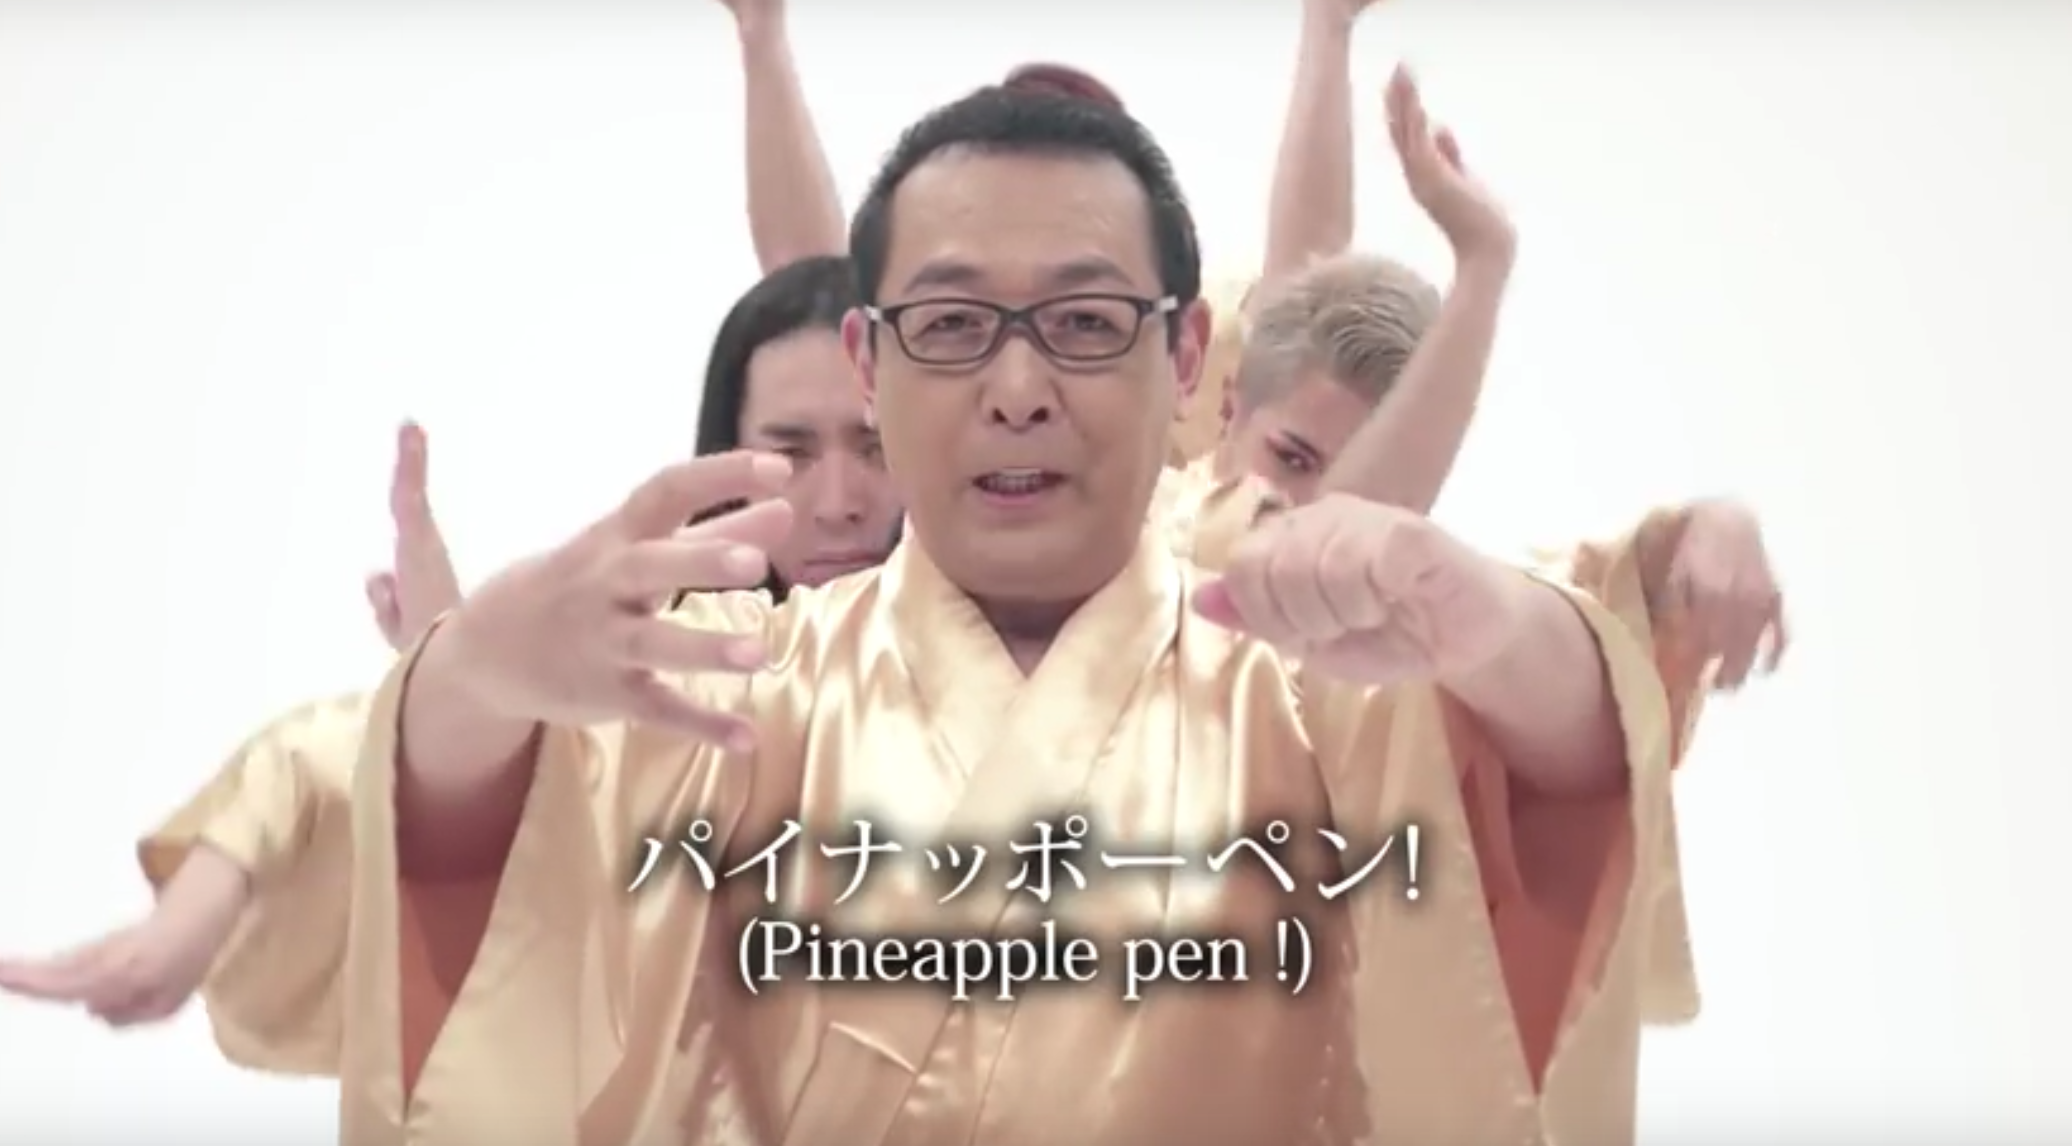 Japanese old singer disclosed Japanese ver PPAP's song